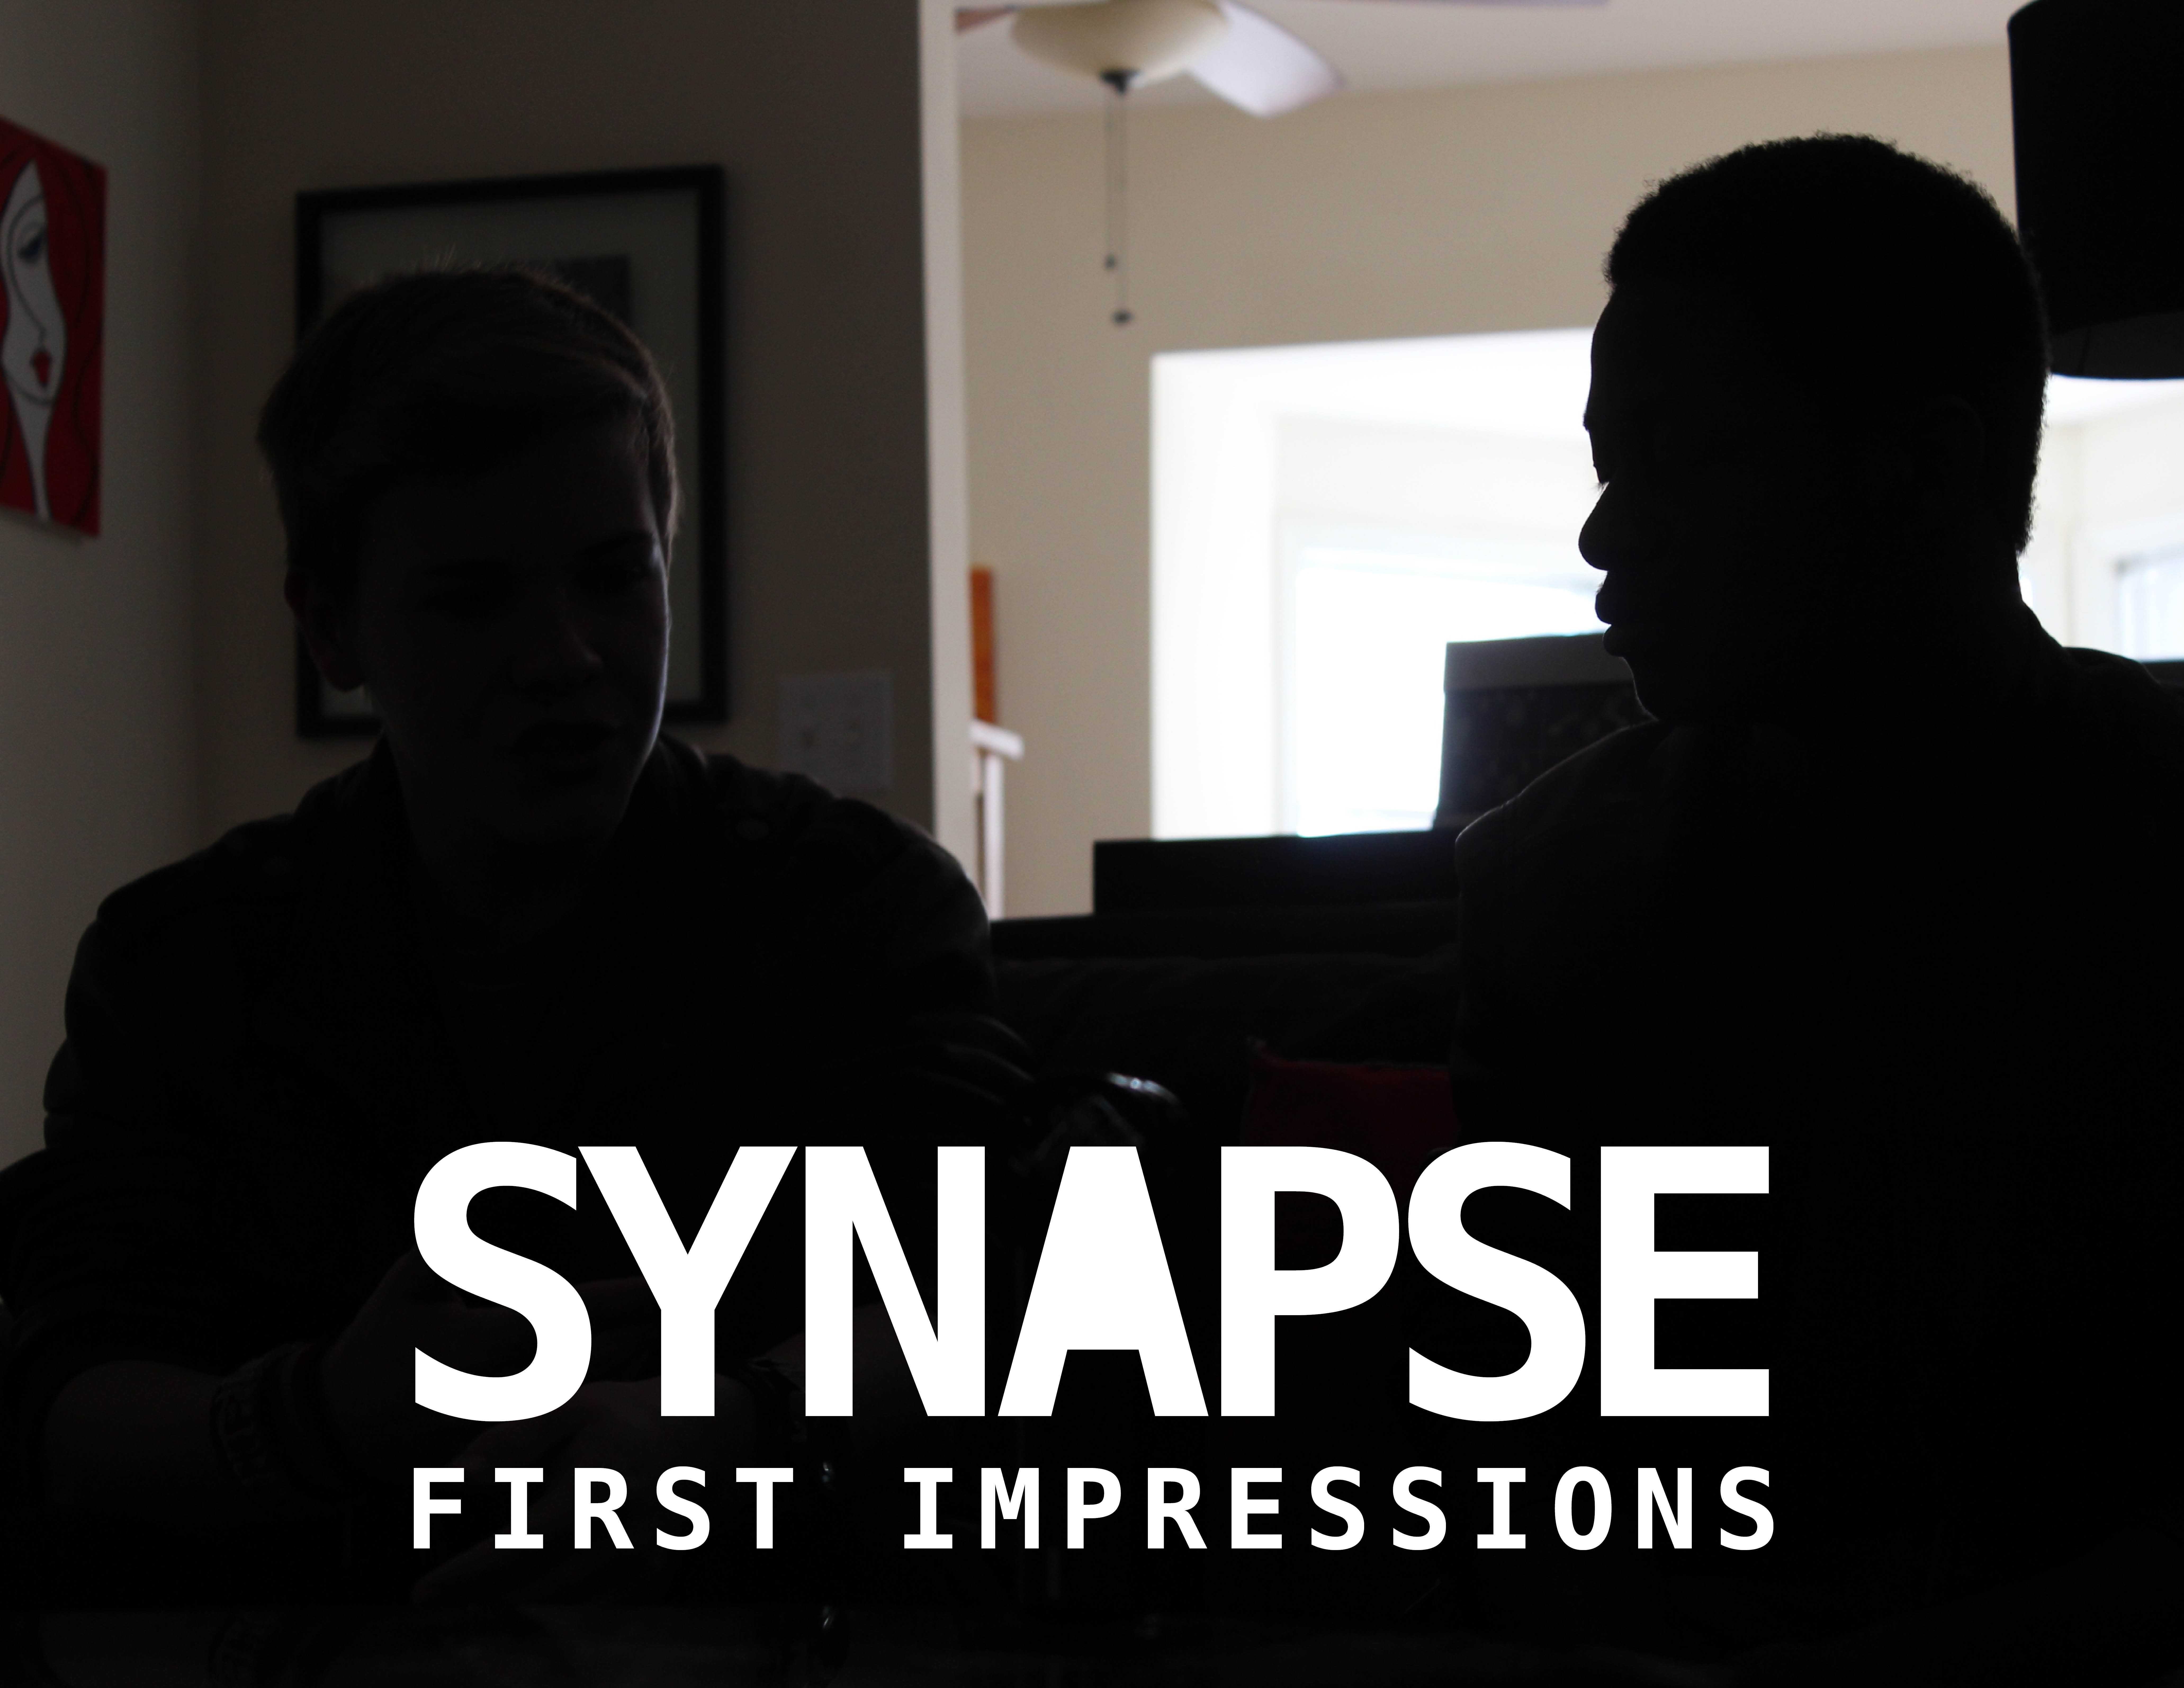 Synapse Episode 11 - First Impressions